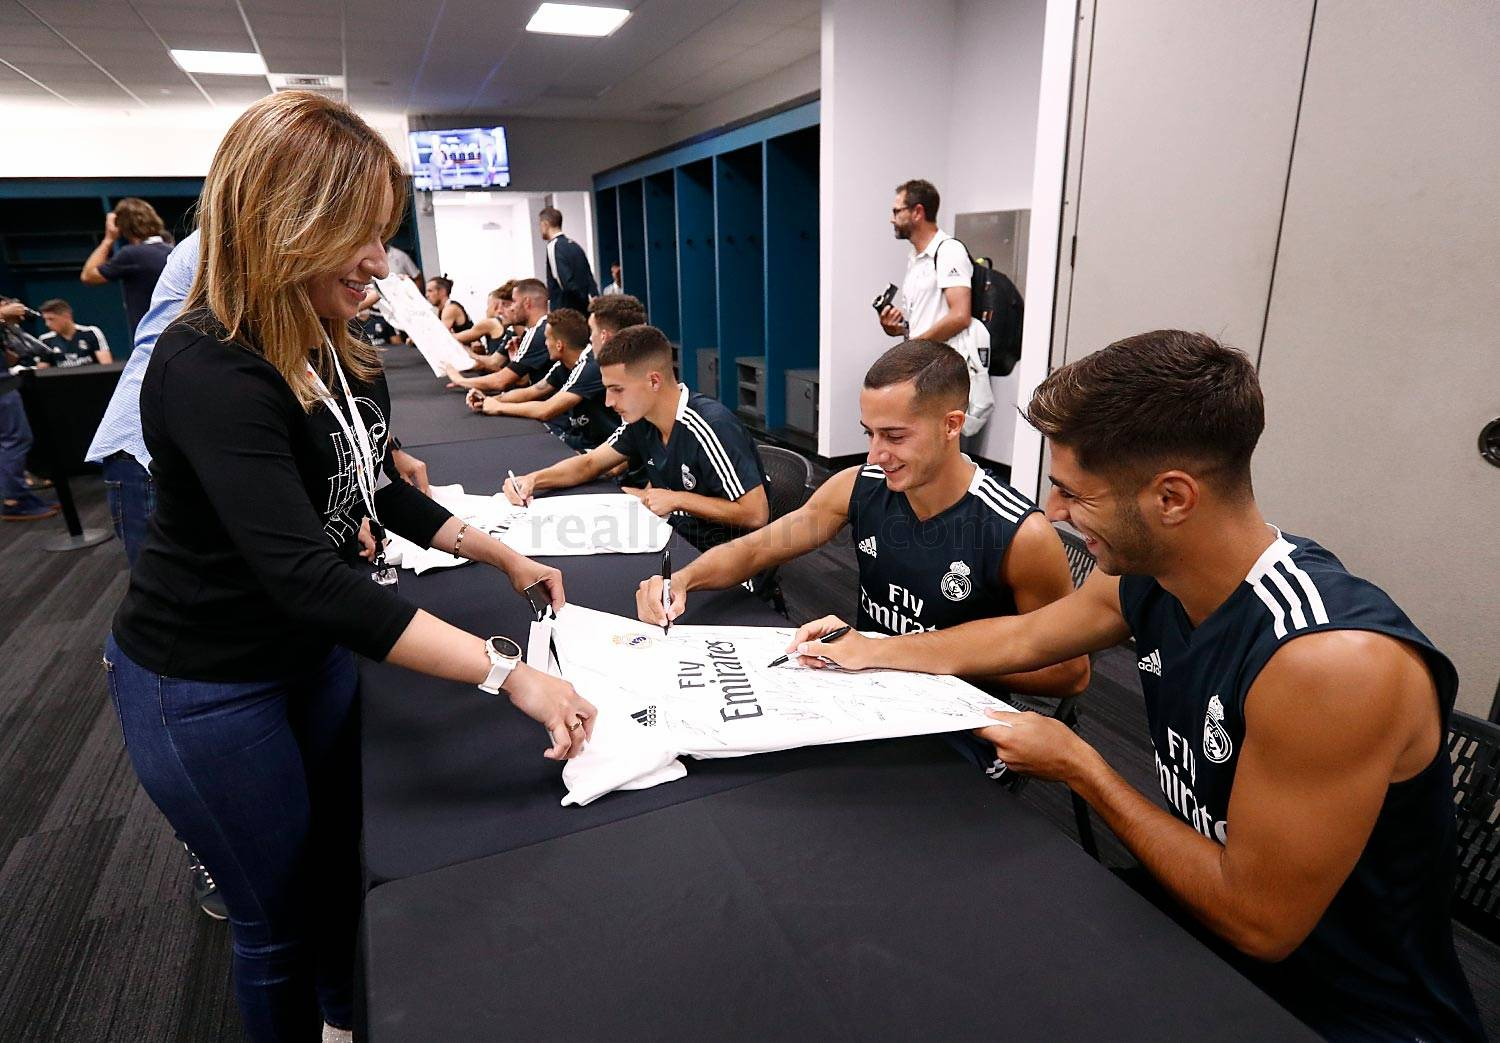 Real Madrid - Meet and greet en el Hard Rock Stadium  - 31-07-2018